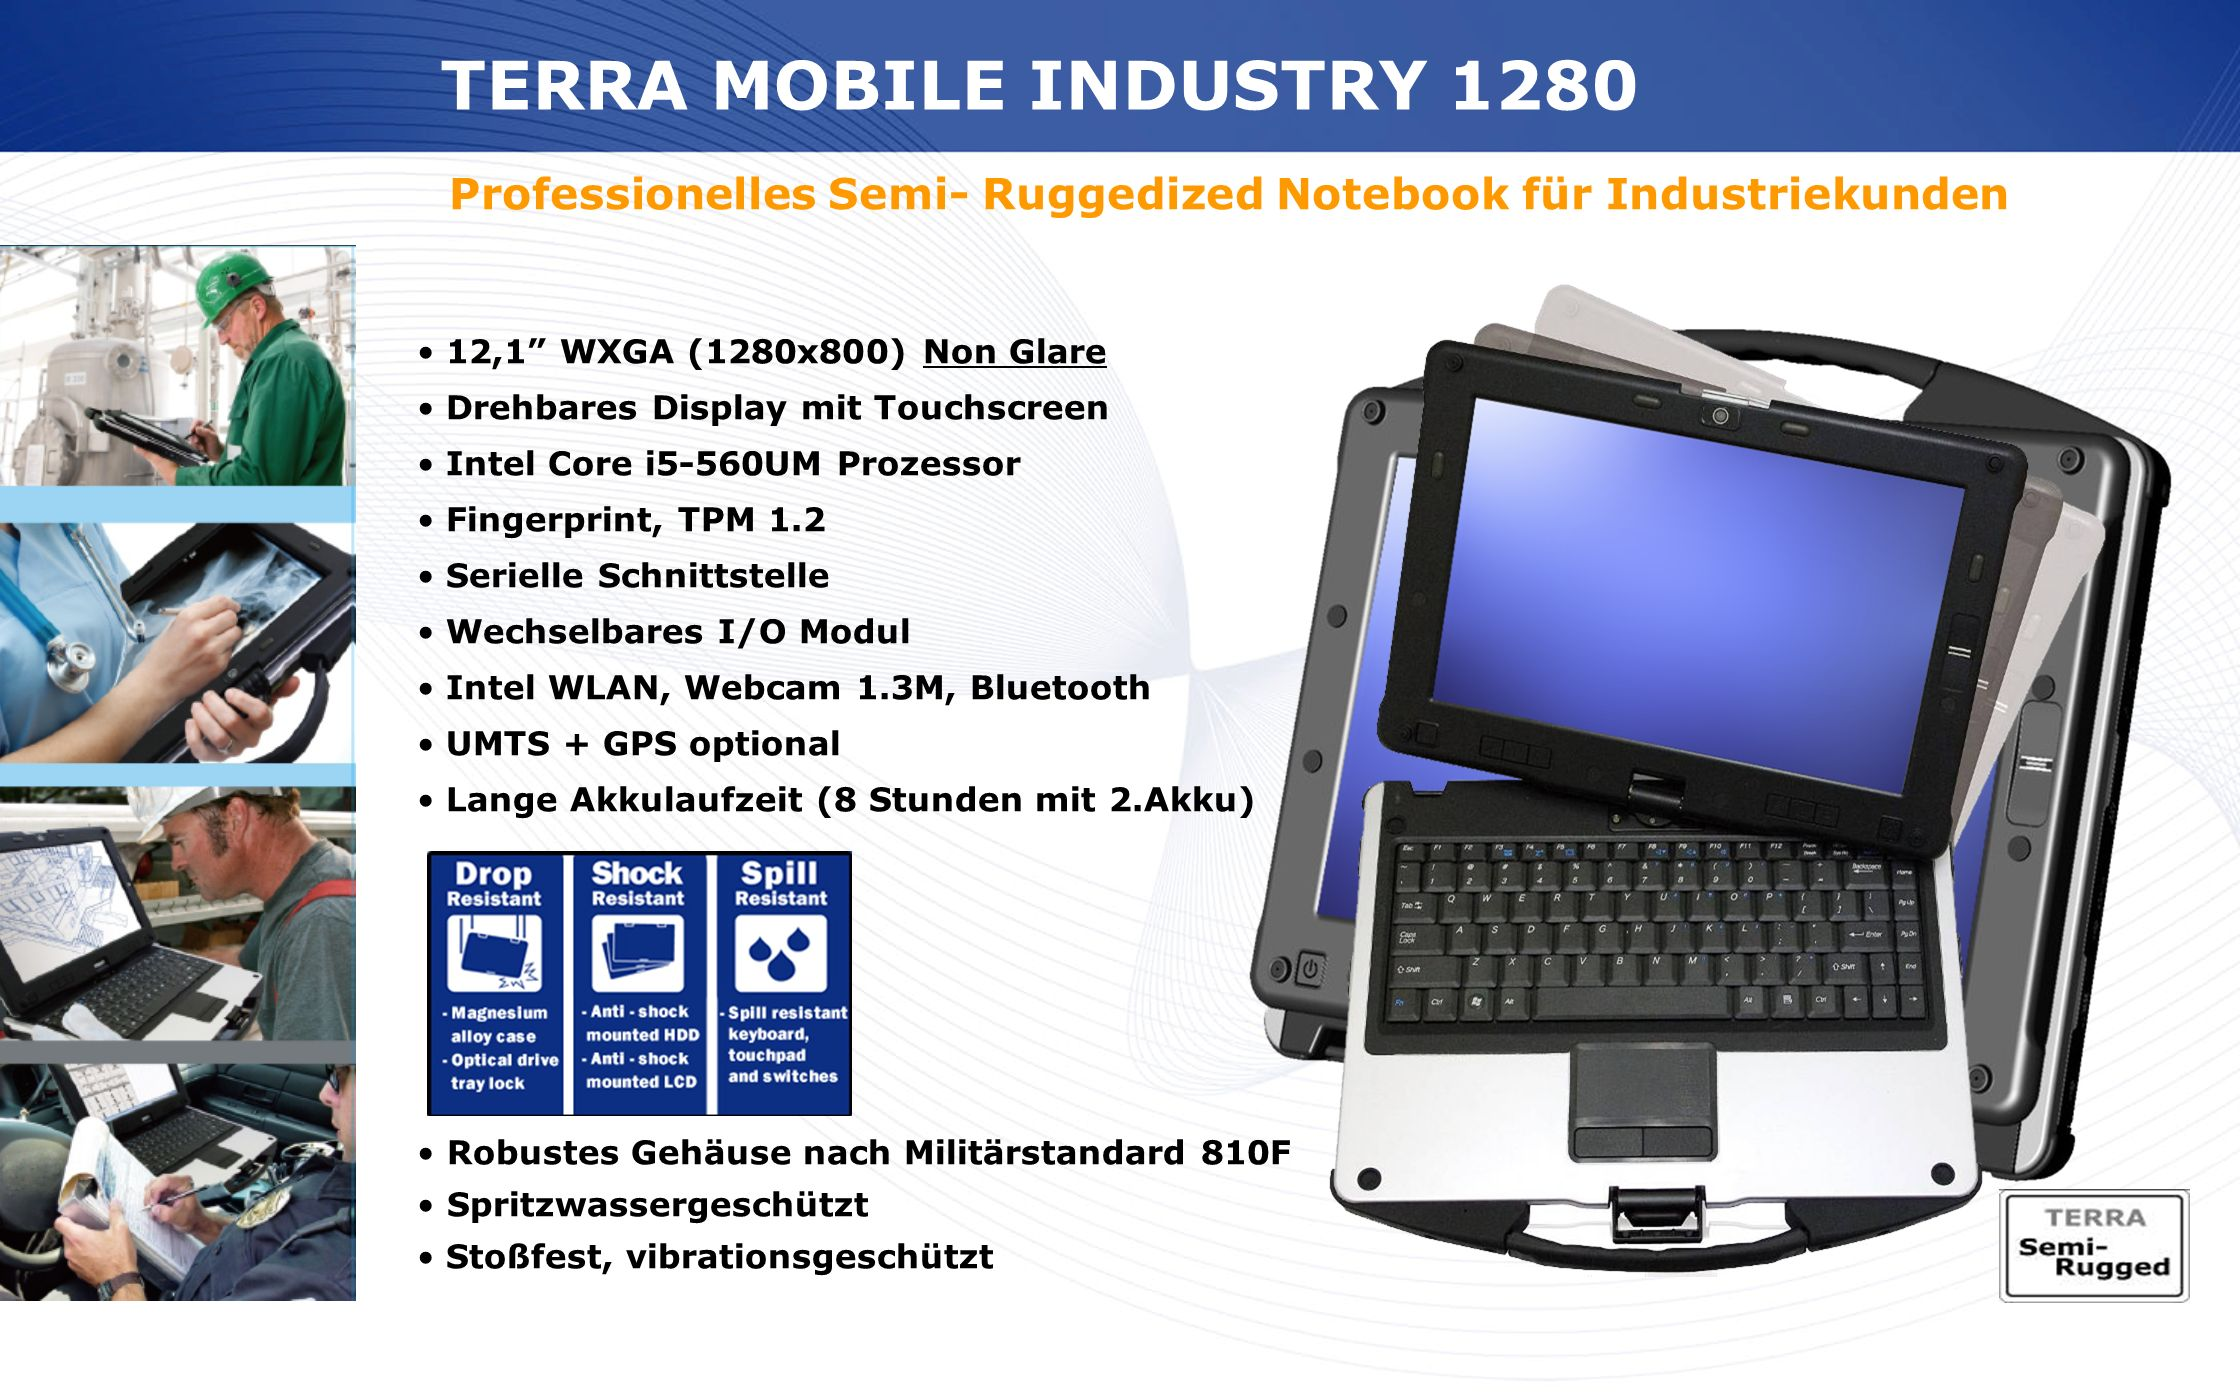 TERRA MOBILE INDUSTRY 1280 Professionelles Semi- Ruggedized Notebook für Industriekunden. 12,1 WXGA (1280x800) Non Glare.